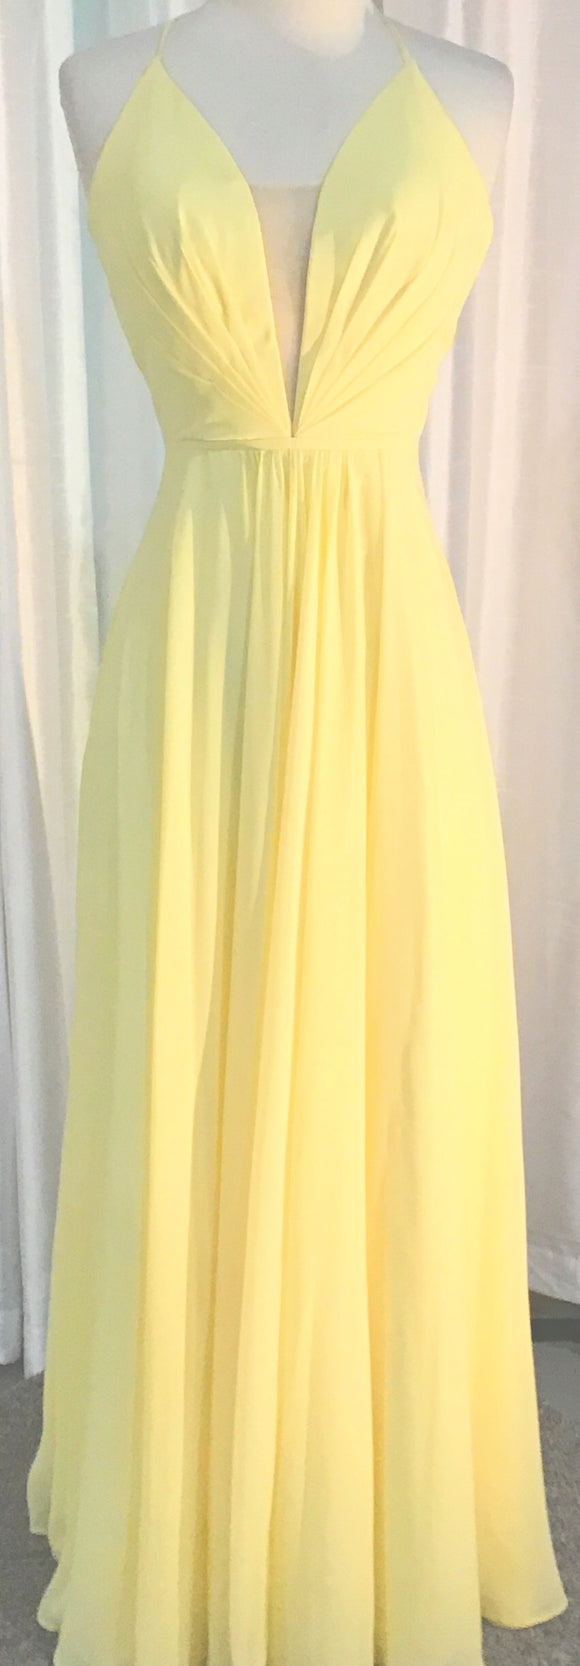 FAVIANA LONG PALE BUTTER YELLOW DRESS MULTIPLE SIZES